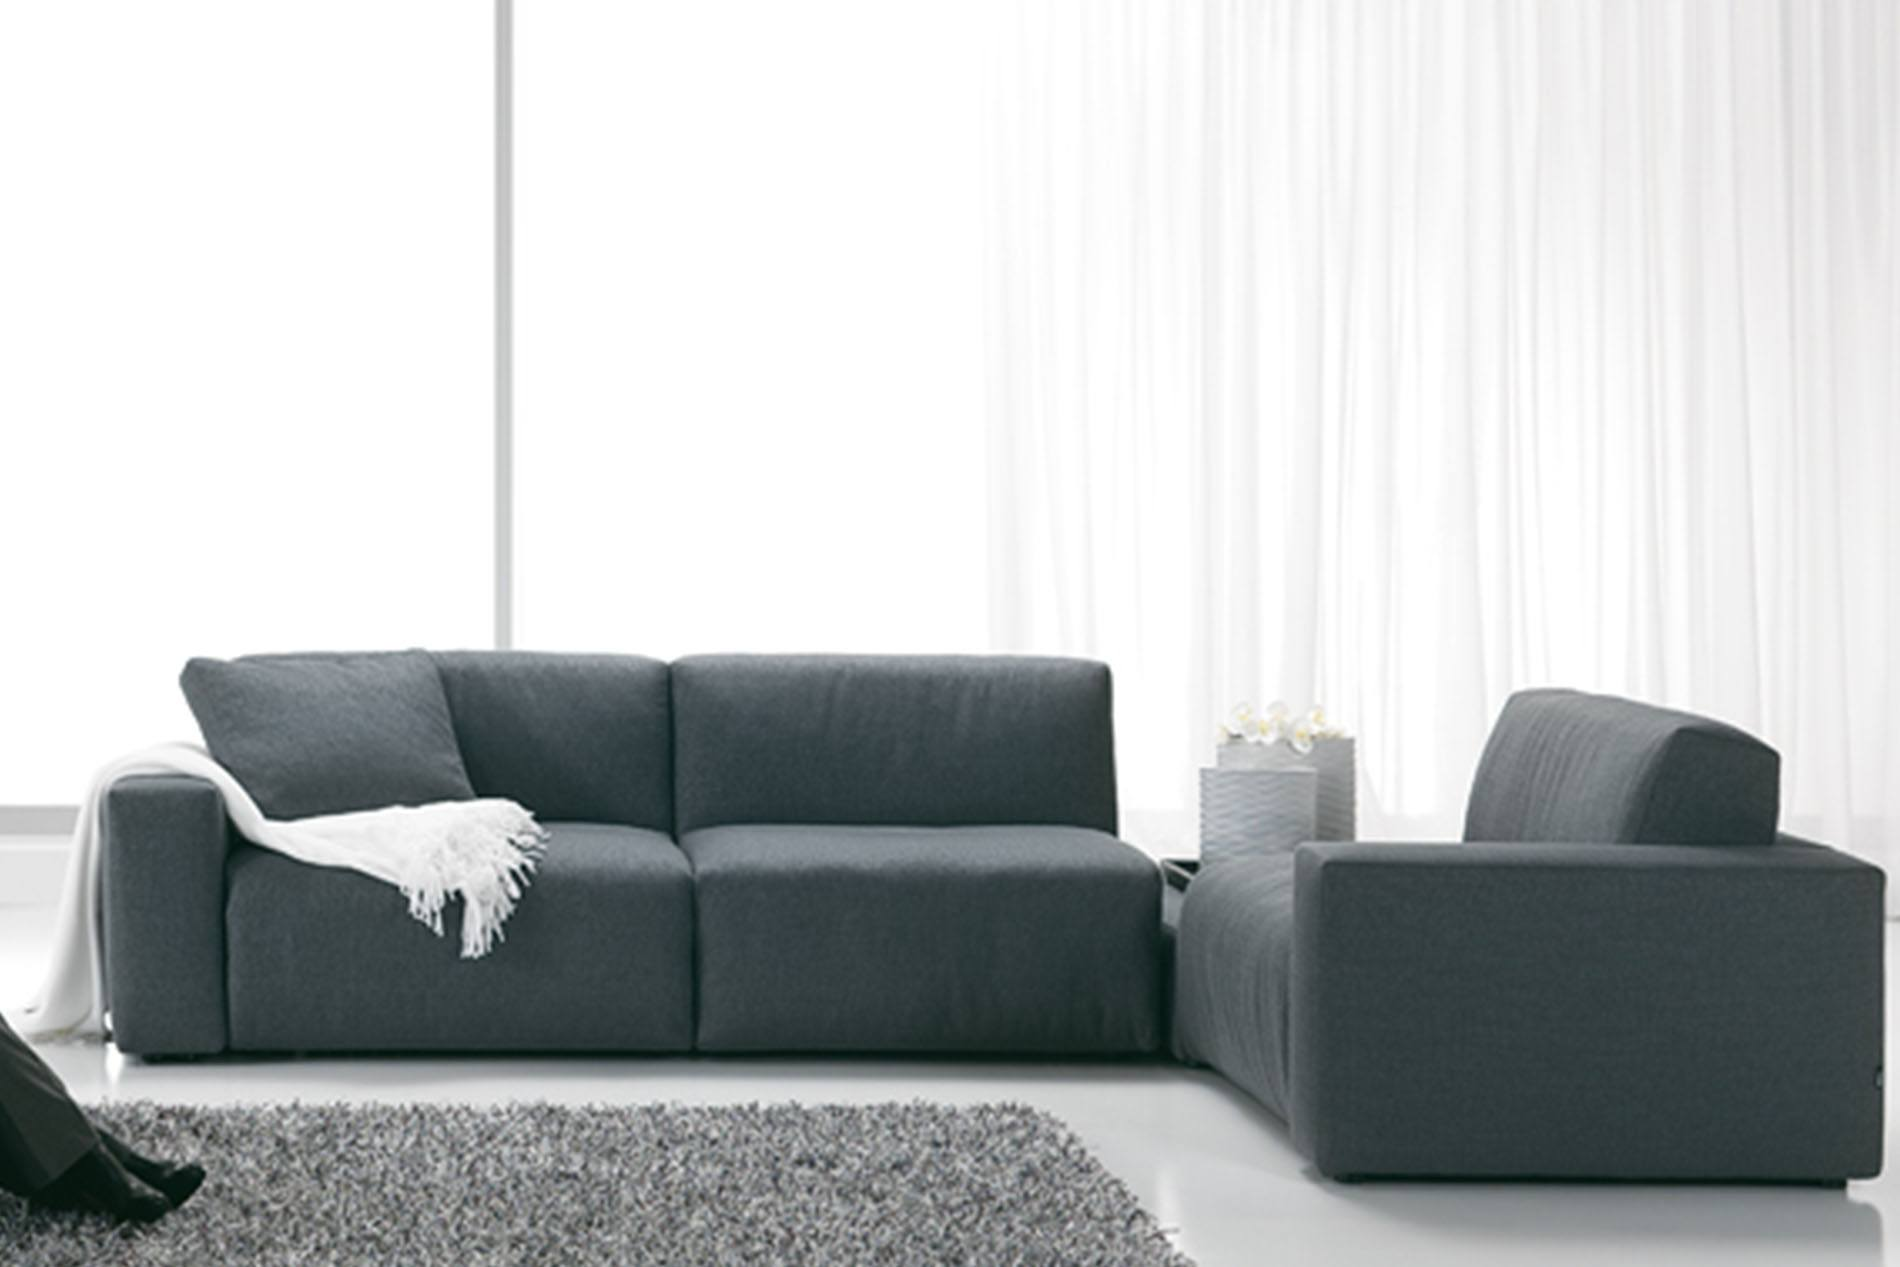 bett sofa kombination stunning micasa mit bett und aus dem programm with bett sofa kombination. Black Bedroom Furniture Sets. Home Design Ideas